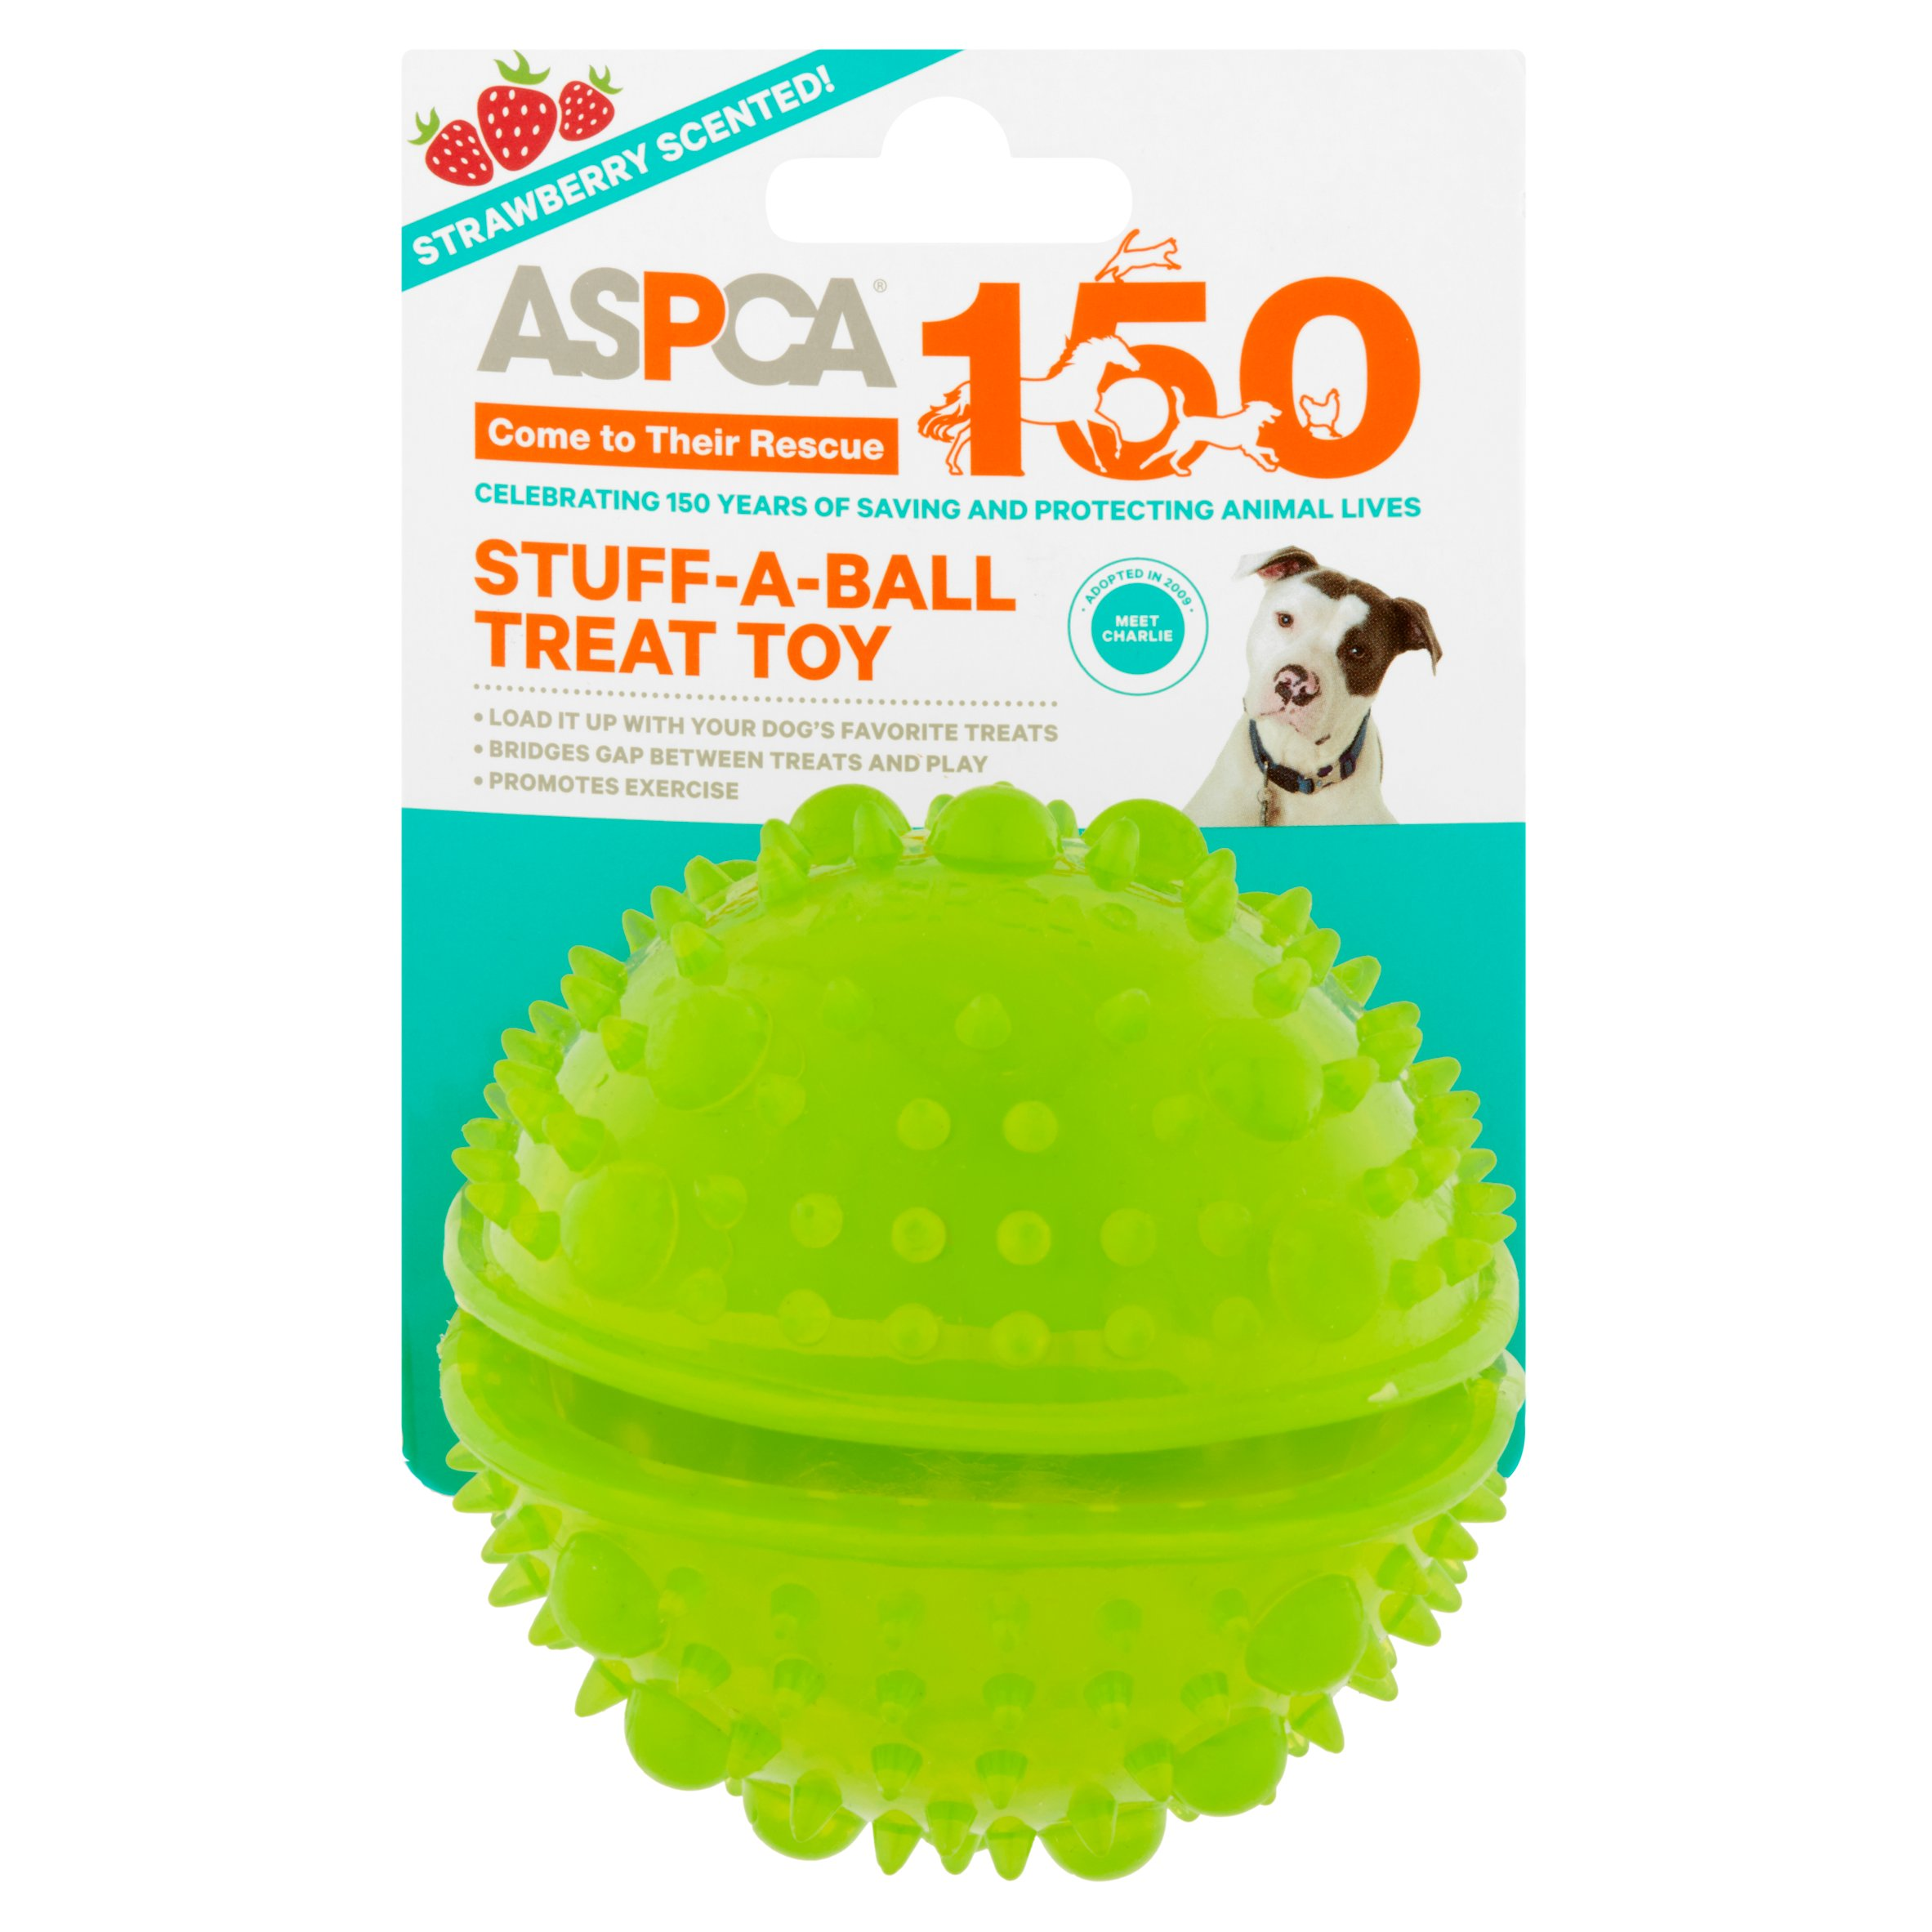 ASPCA STUFF-A-BALL TREAT Dog Toy